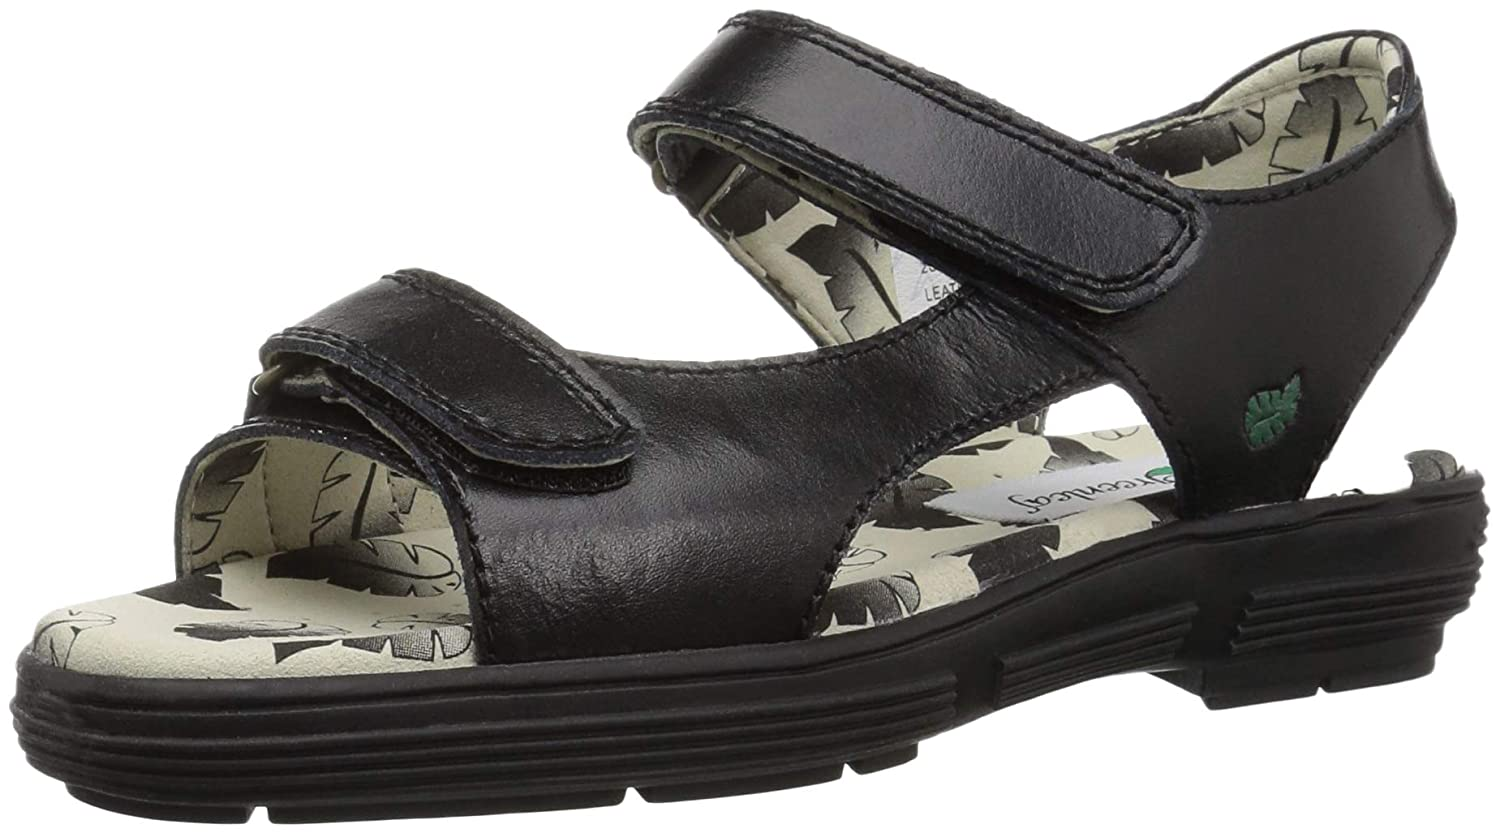 655ee39840c Golfstream Women s Two Strap Sport Sandal  Buy Online at Low Prices in  India - Amazon.in